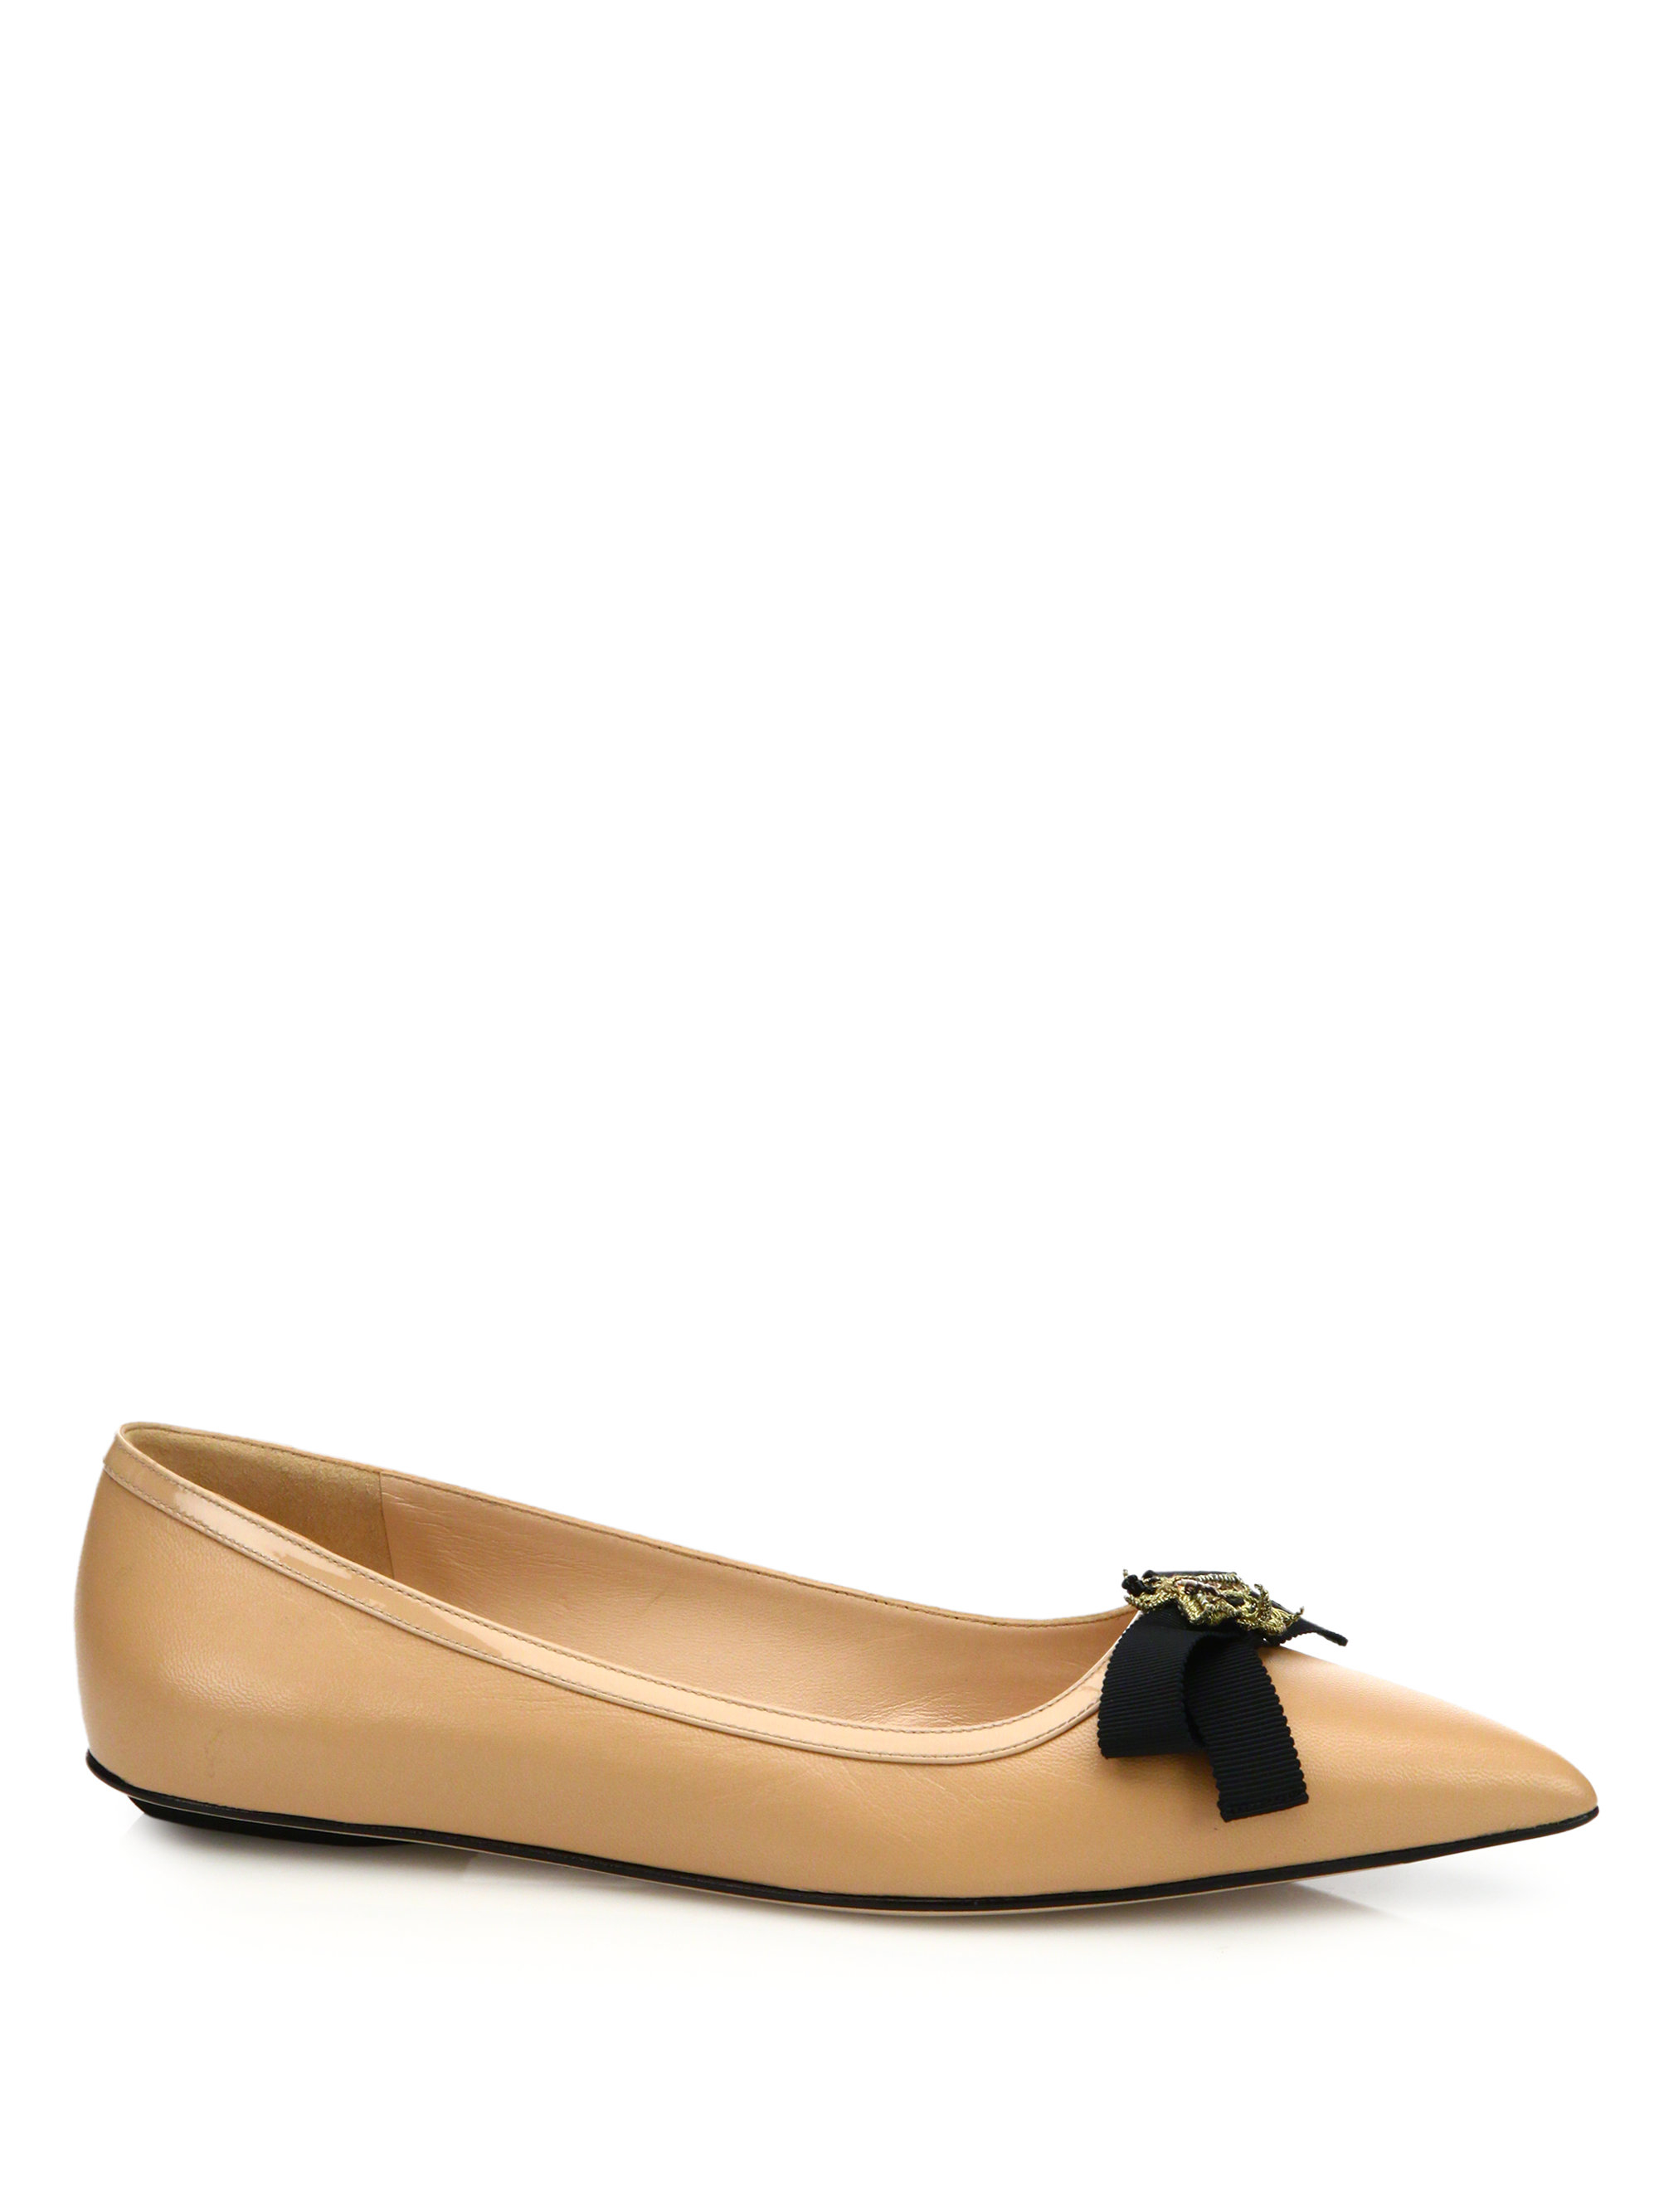 234dce336bd5d1 Lyst - Gucci Moody Leather Ballet Flats in Natural